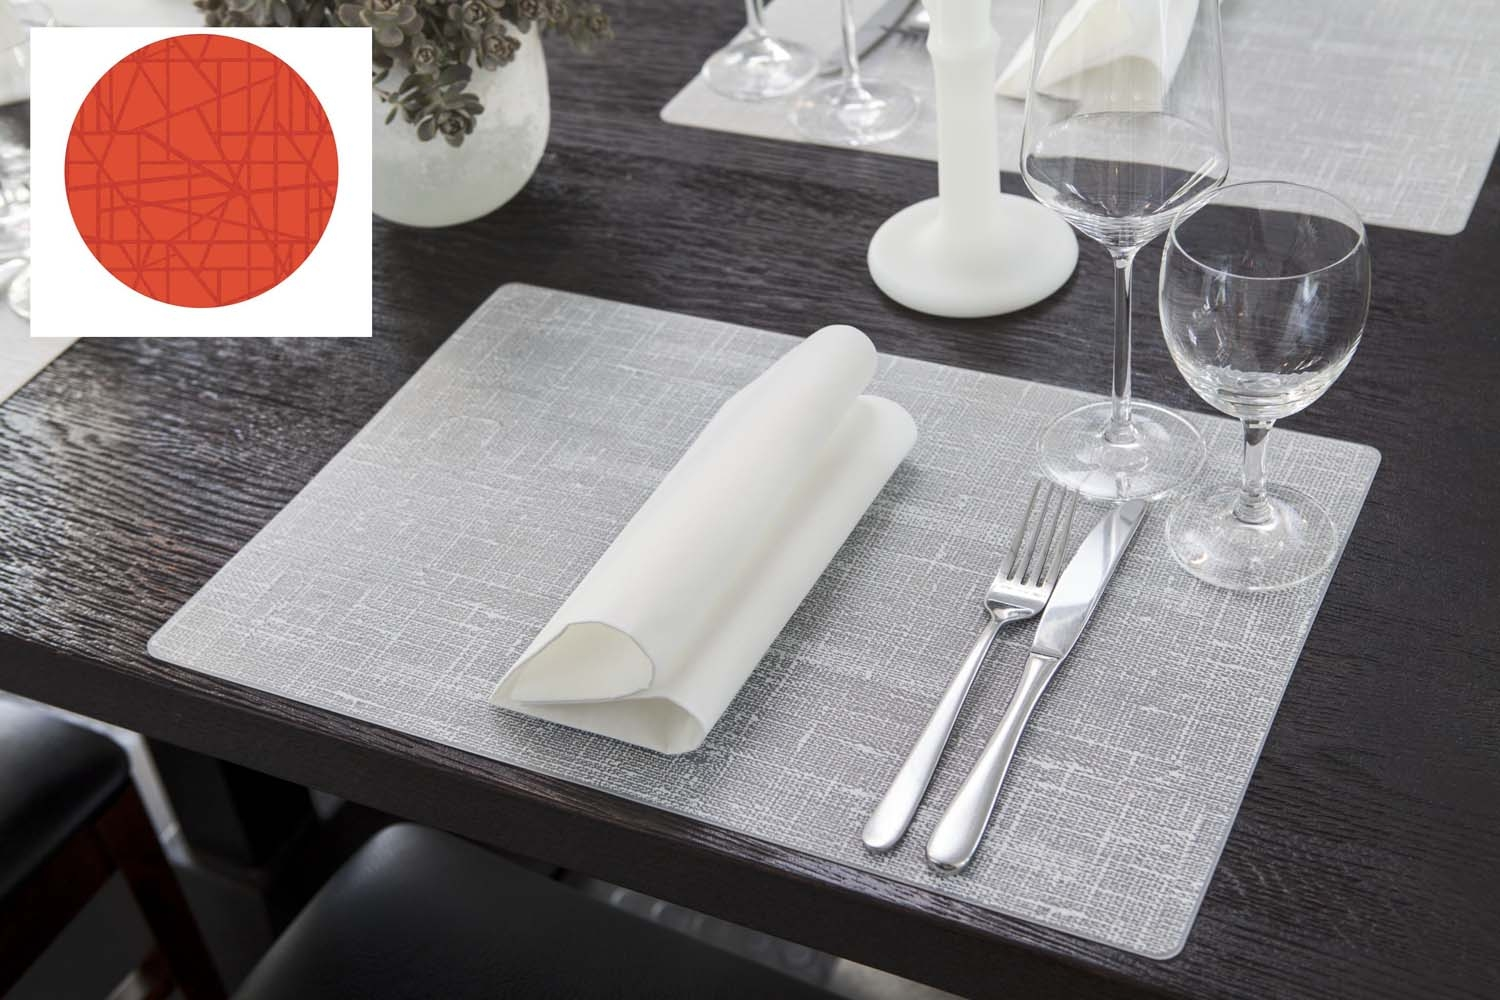 Set de table silicone mandarine 30 x 45 cm duni paquet de 6 - Set de table intisse ...